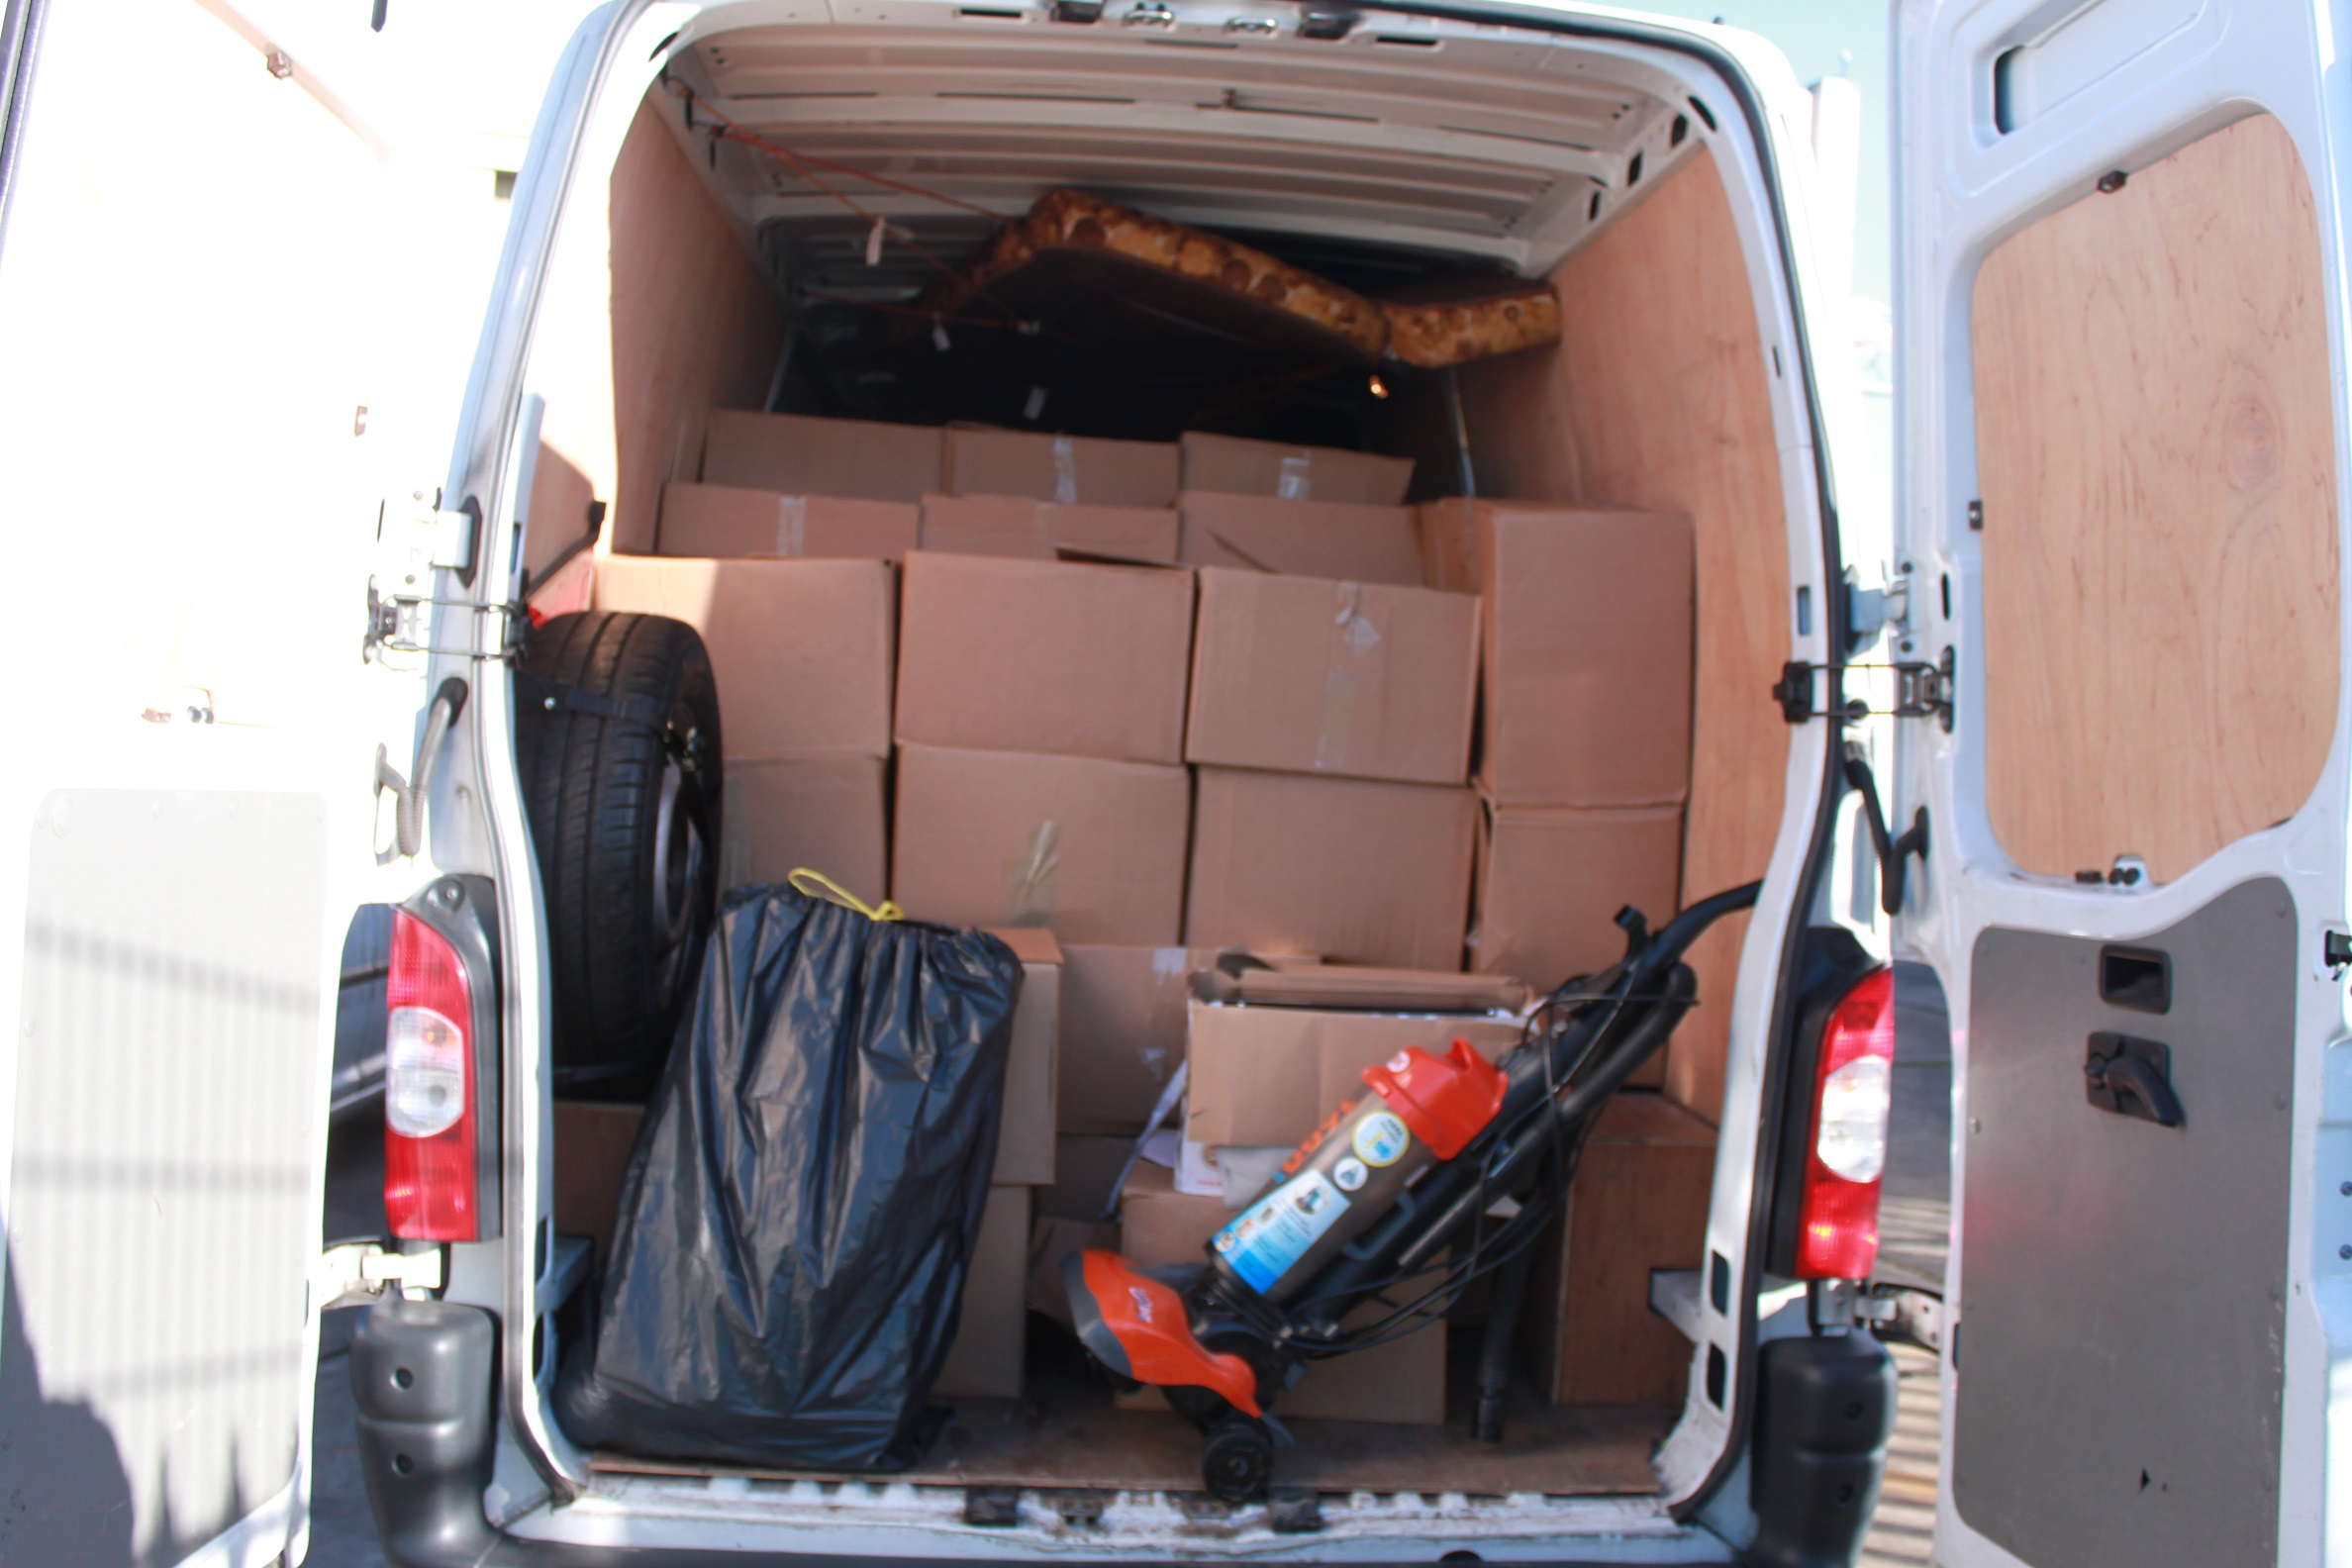 the van packed with boxes